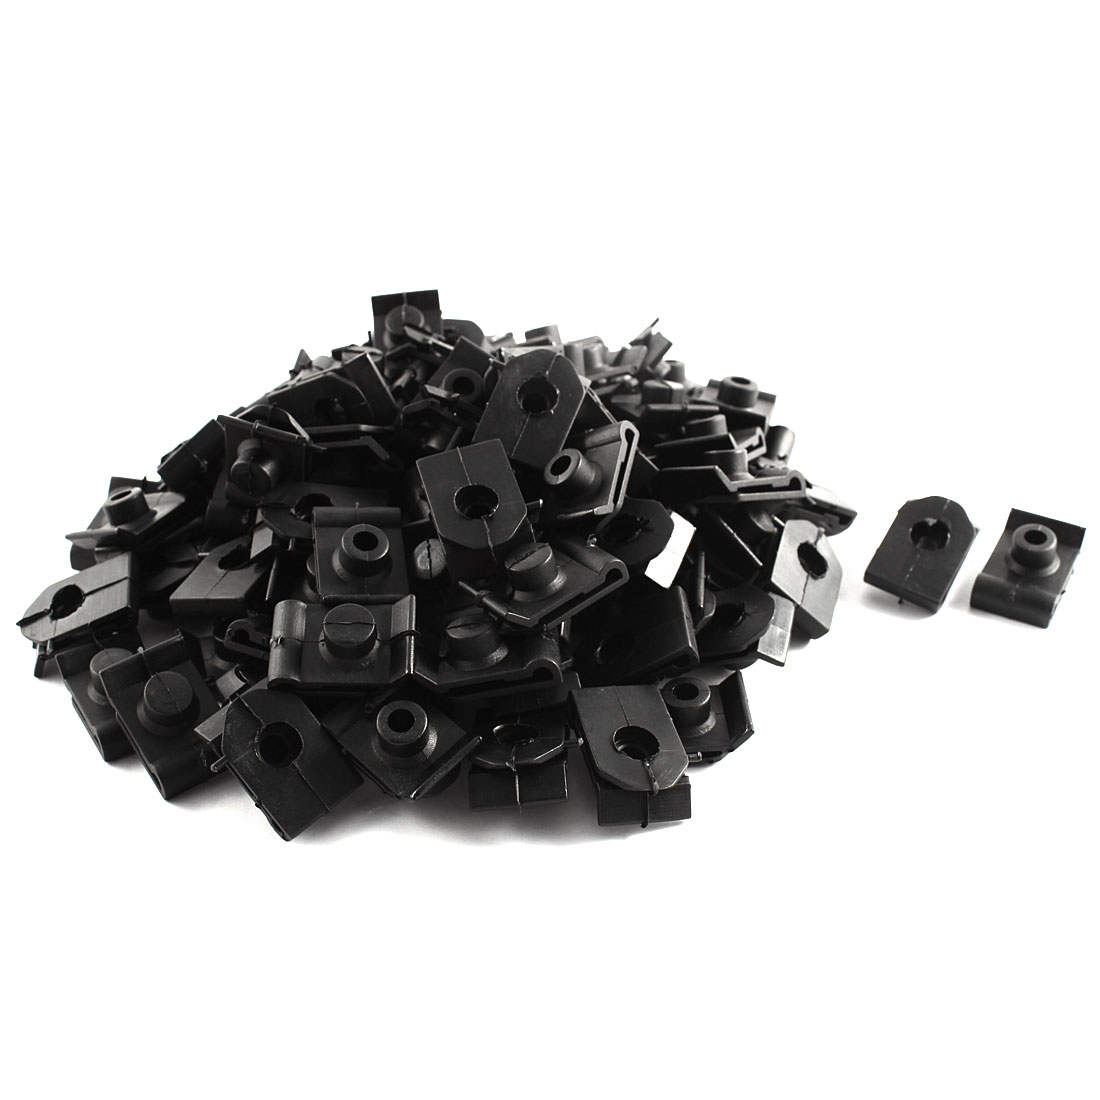 100 Pcs Auto Car Black 9mm Hole Door Fender Plastic U Clips Screws Fasteners